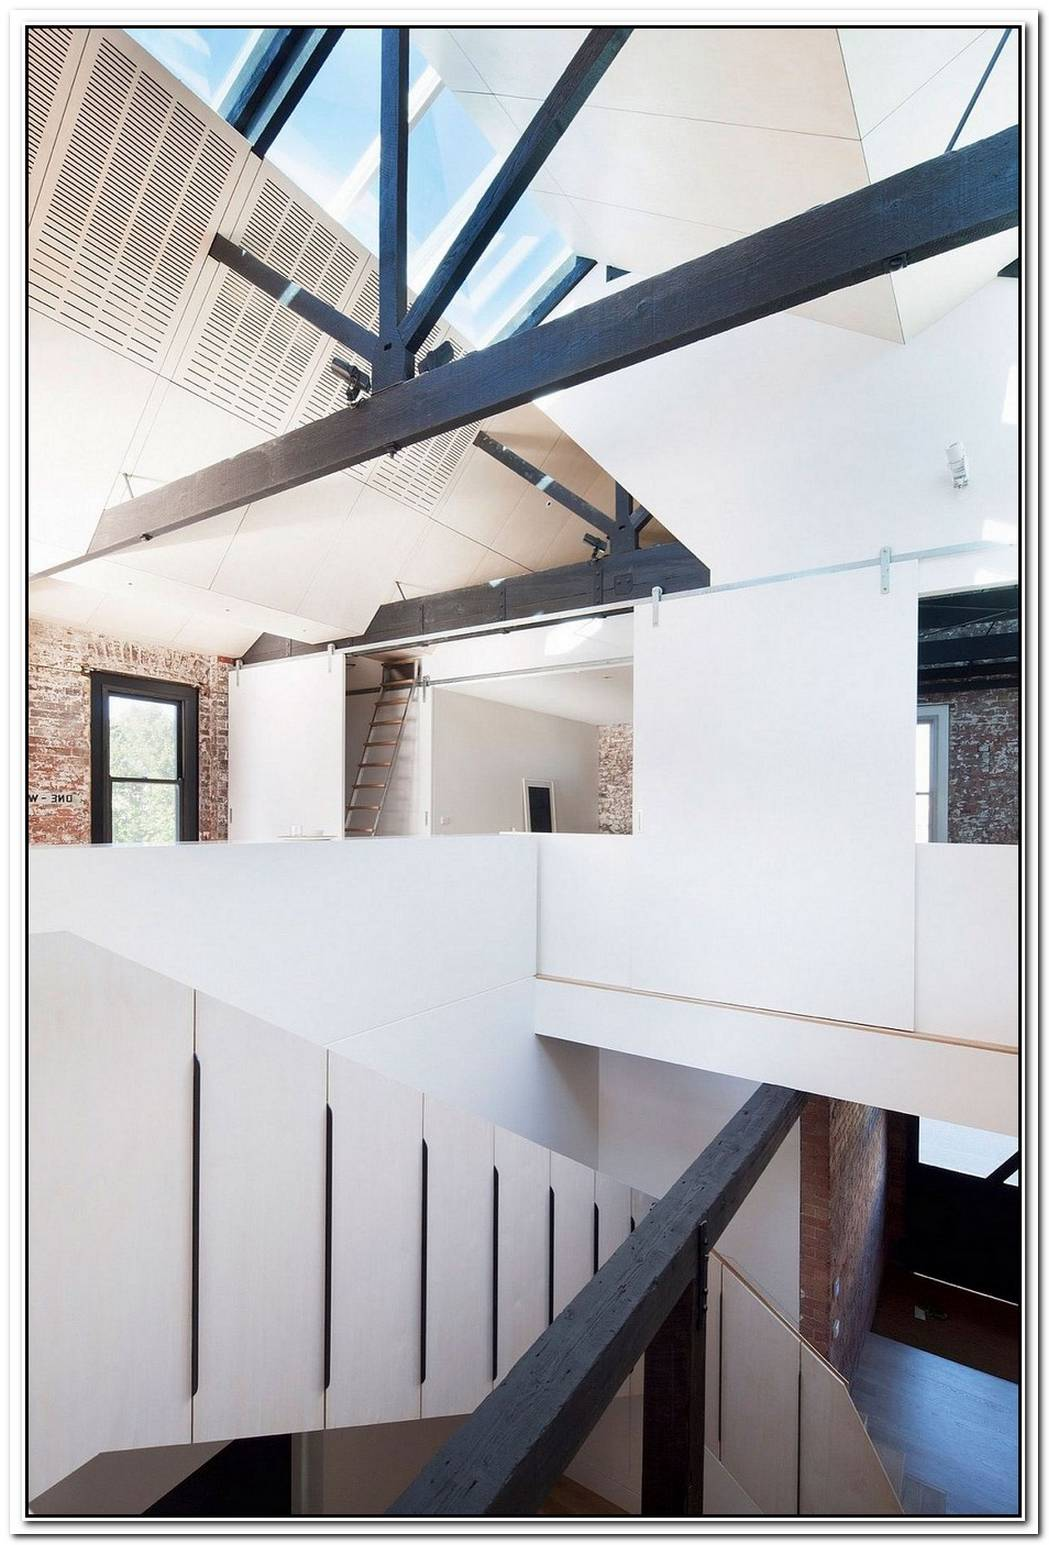 Water FactoryExtended Family House Takes Shape Inside Industrial Warehouse